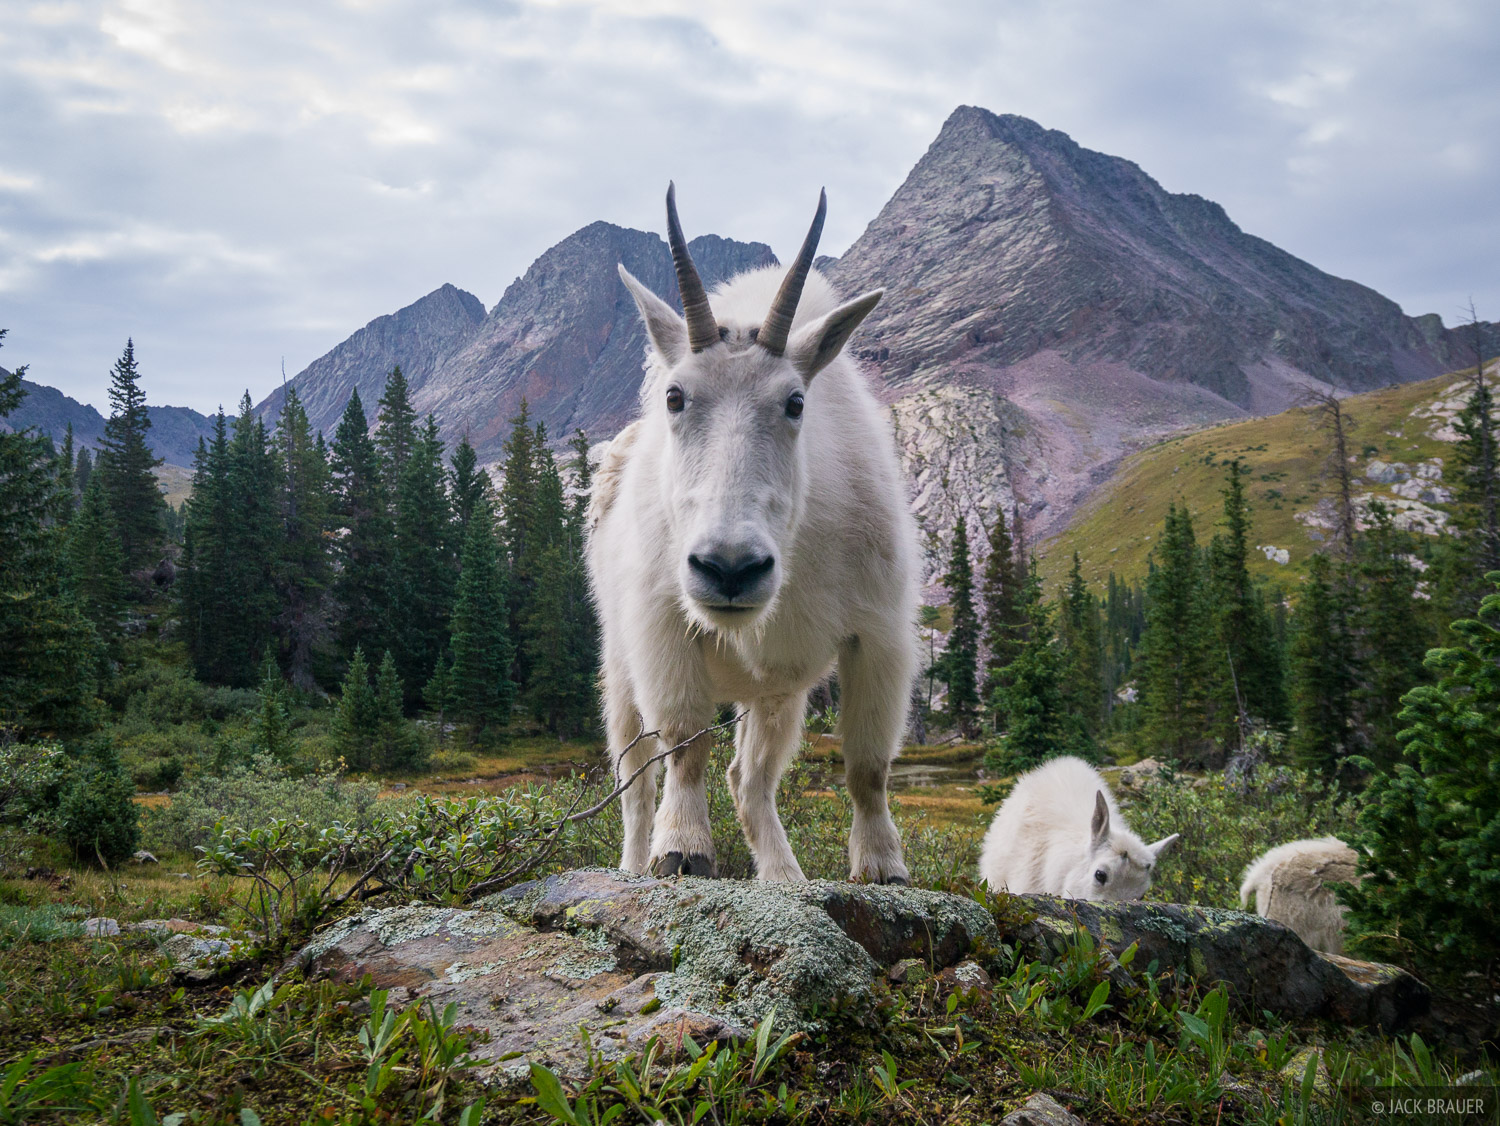 Mountain goat, Weminuche Wilderness, San Juan Mountains, Colorado, grenadier range, photo